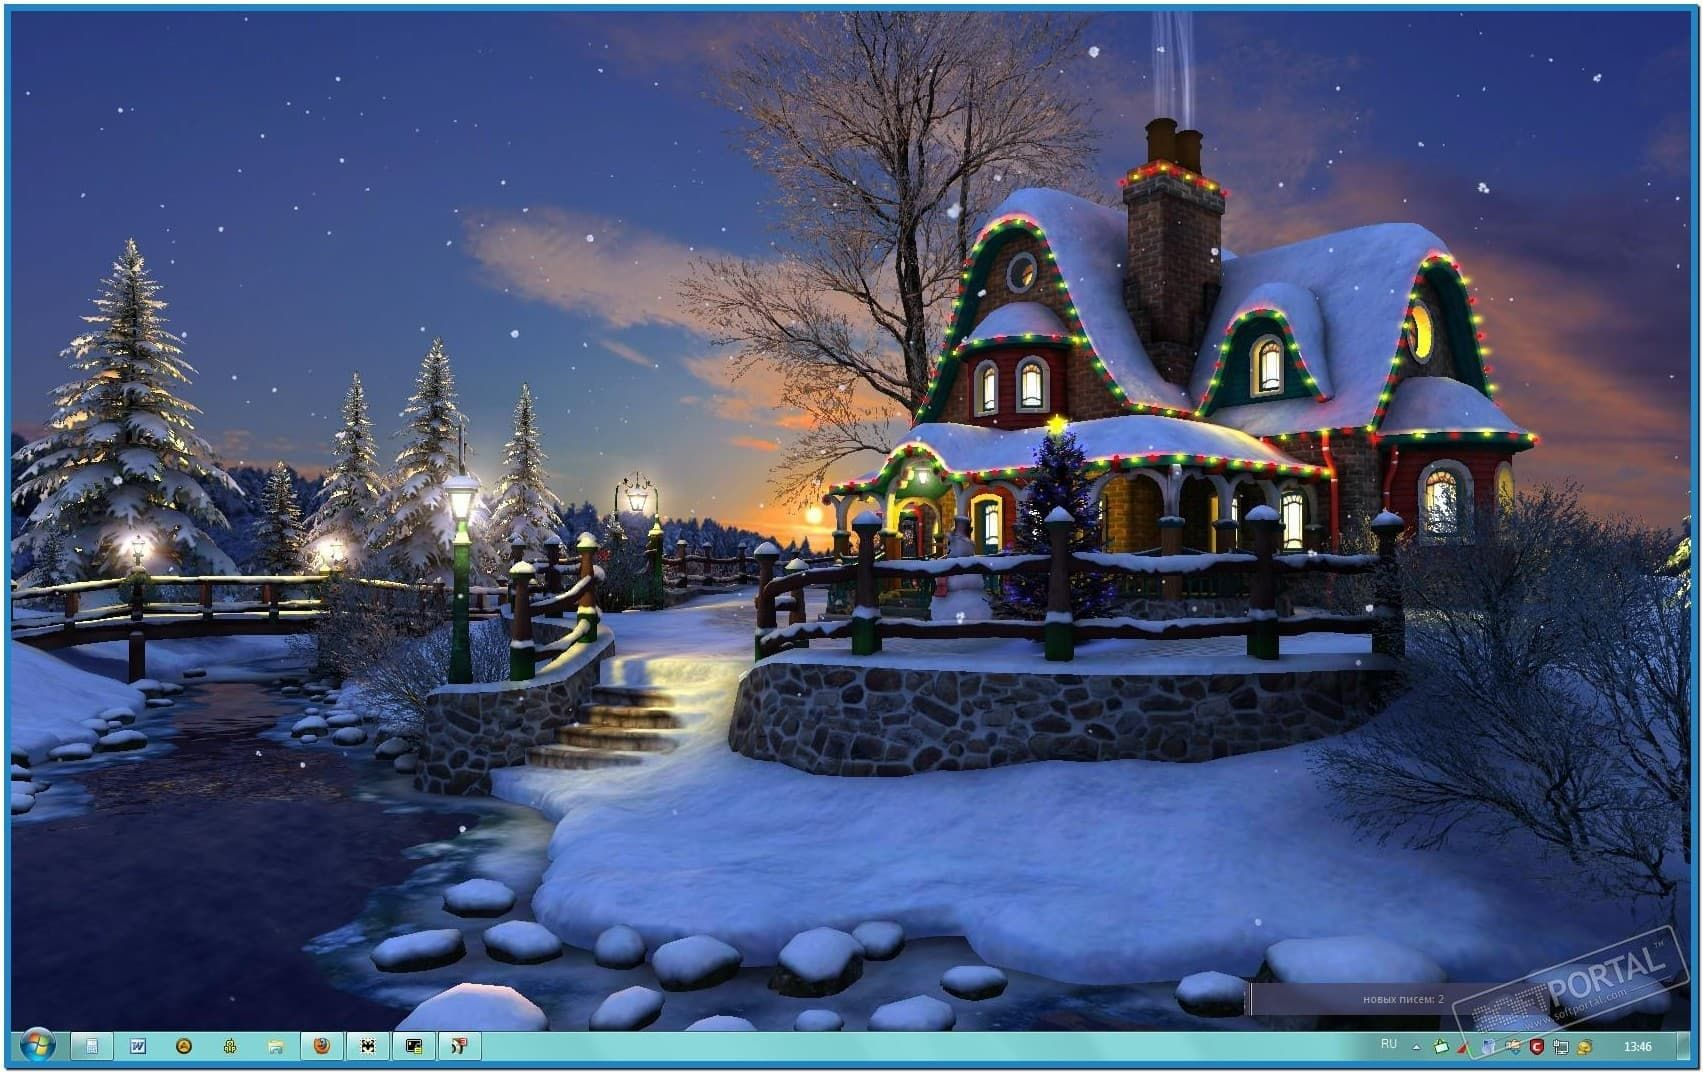 Falling Snow Live Wallpaper Tutorial 3d Animated Christmas Screensavers White Christmas 3d